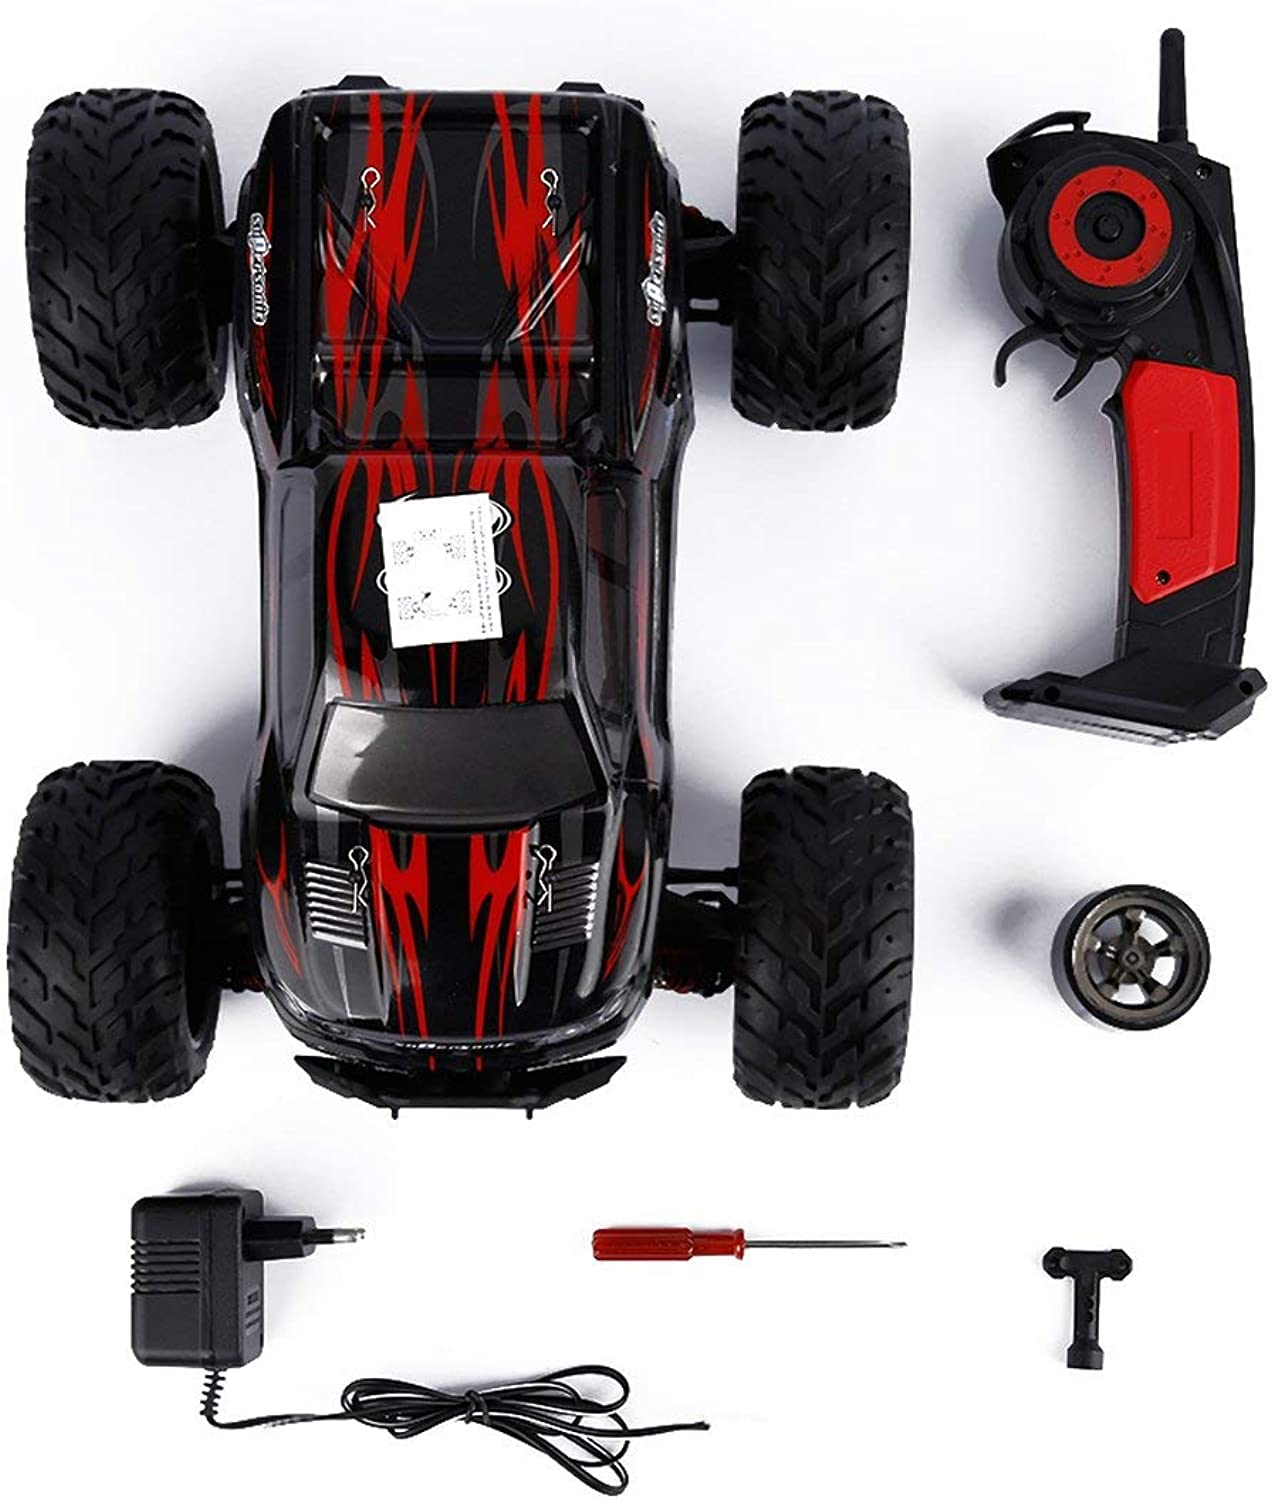 1 12 Scale RC Off Road Durable Remote Control Truck S911 High Speed Racing Car for GPTOYS Universal RC Model